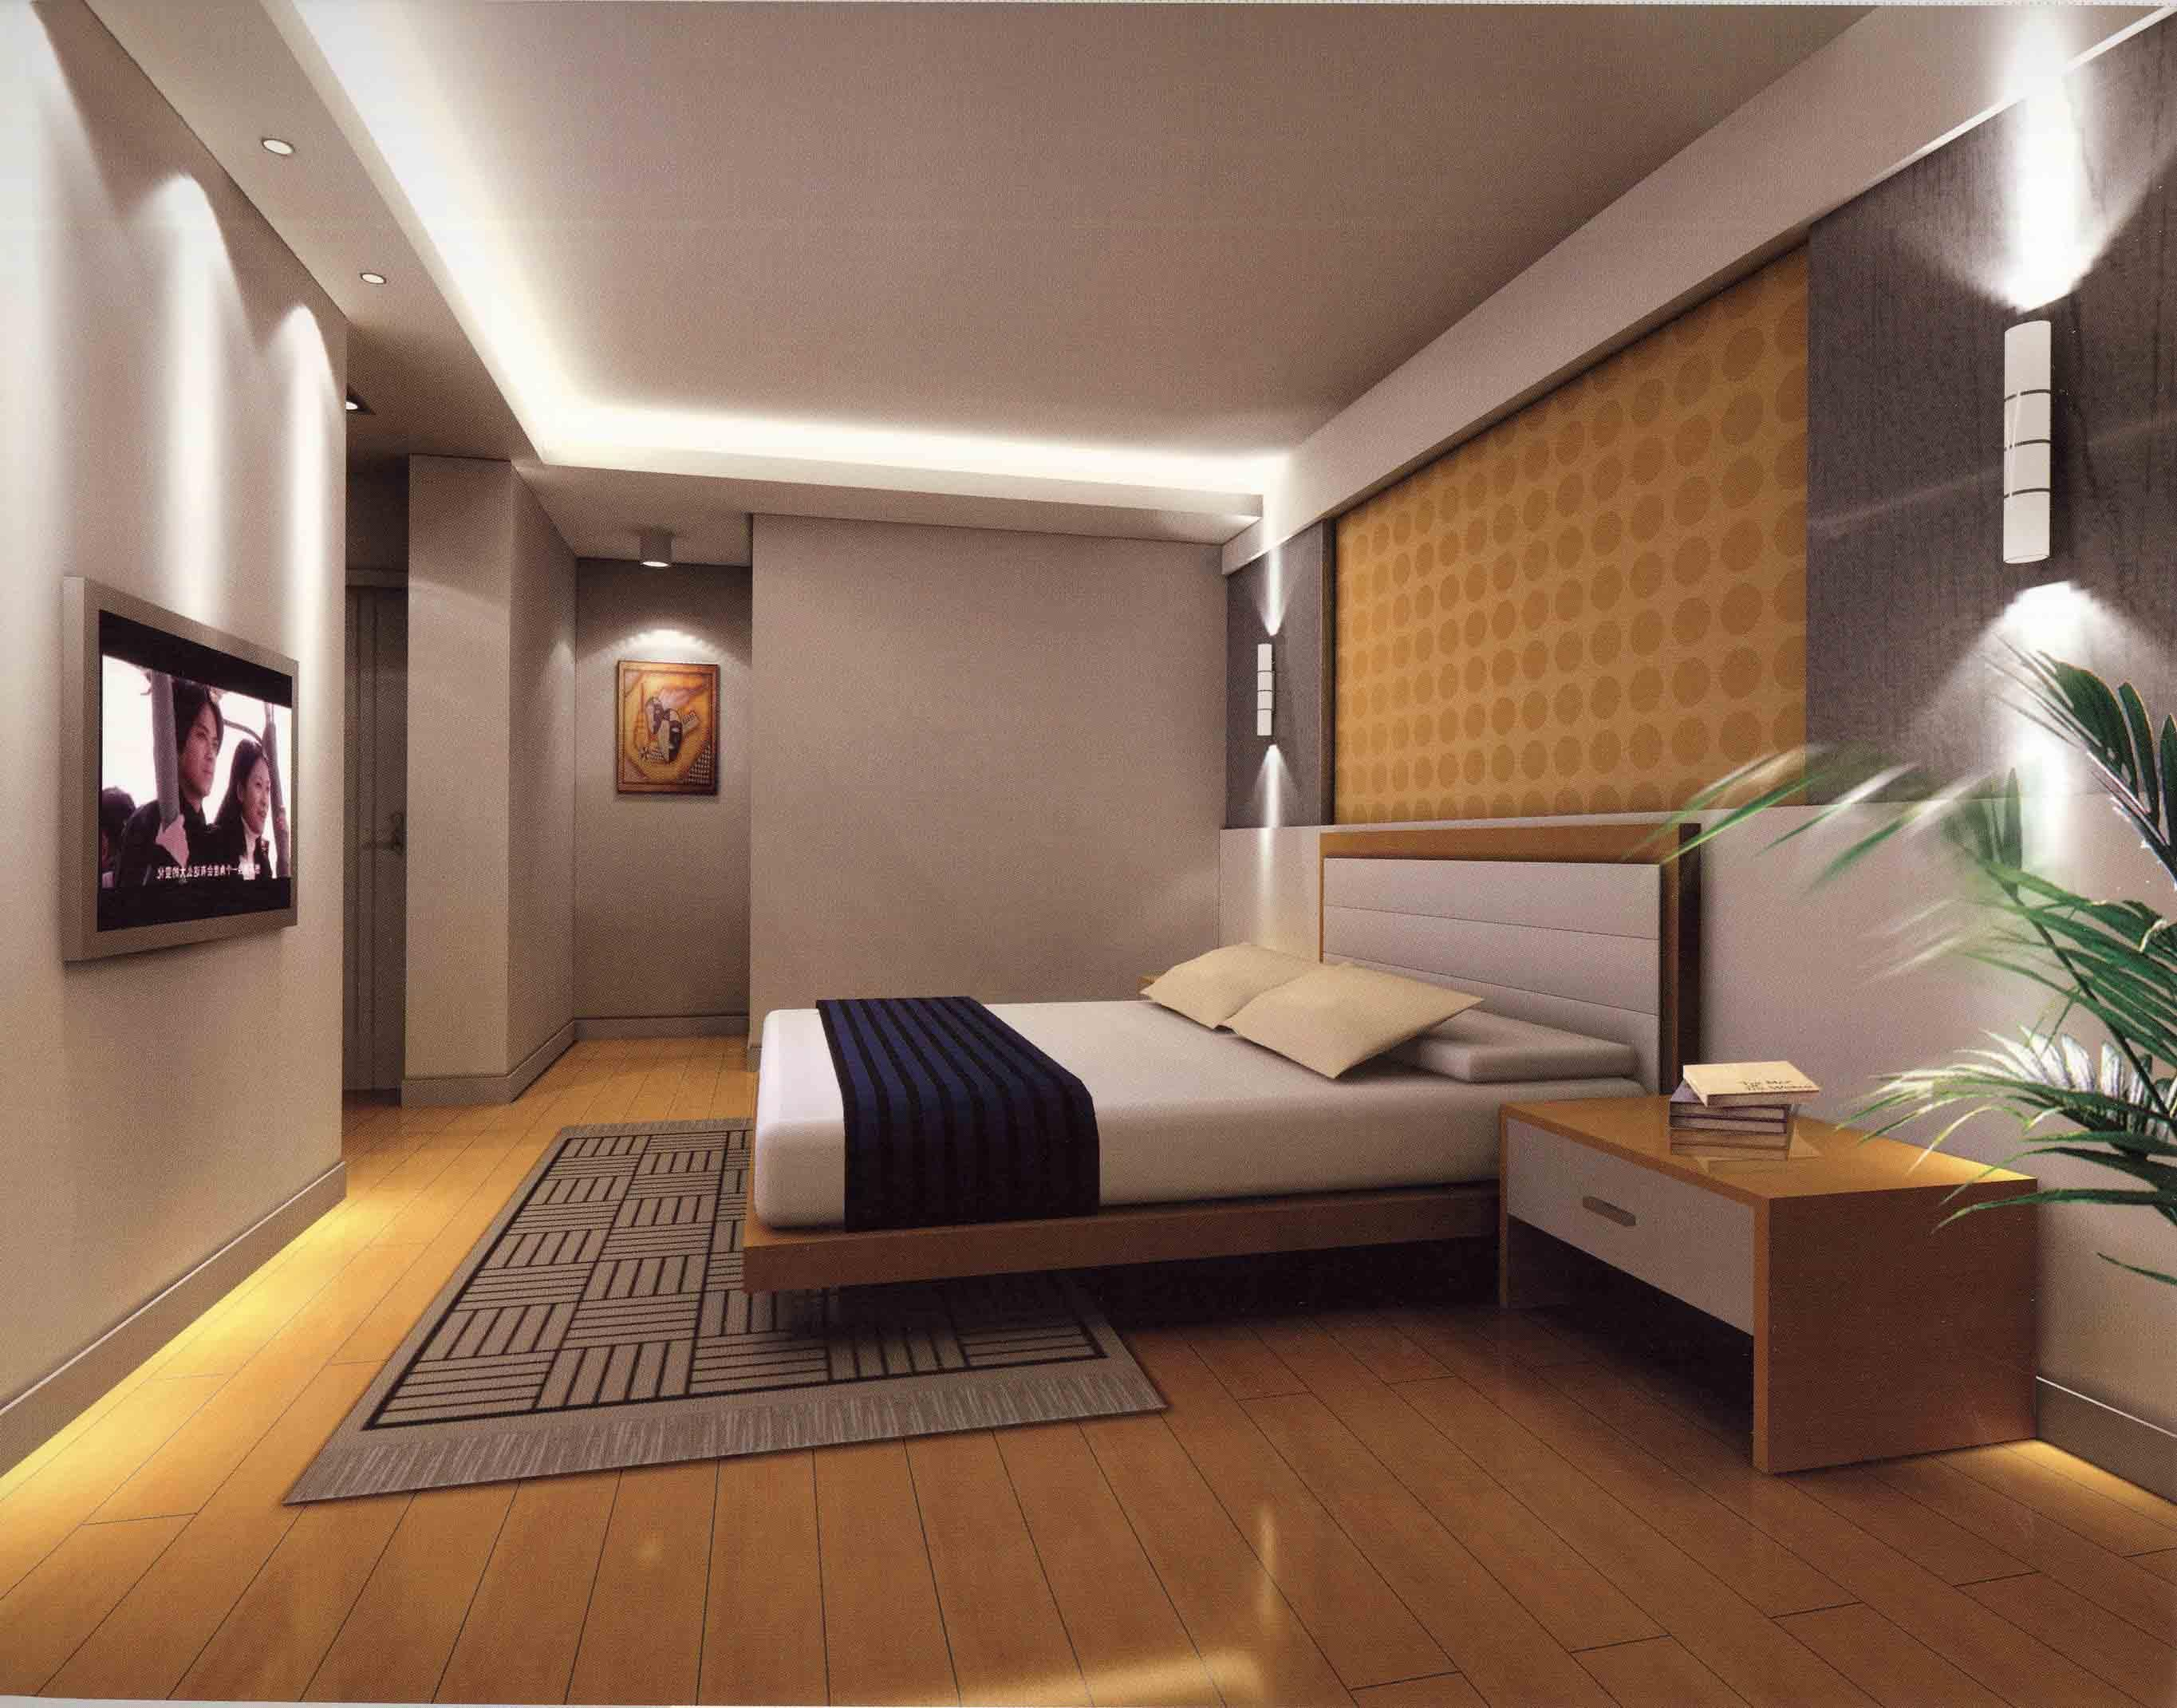 Master bedrooms designs - Modern Master Bedroom With Wall Tv Unit And Wooden Floor Kbhome